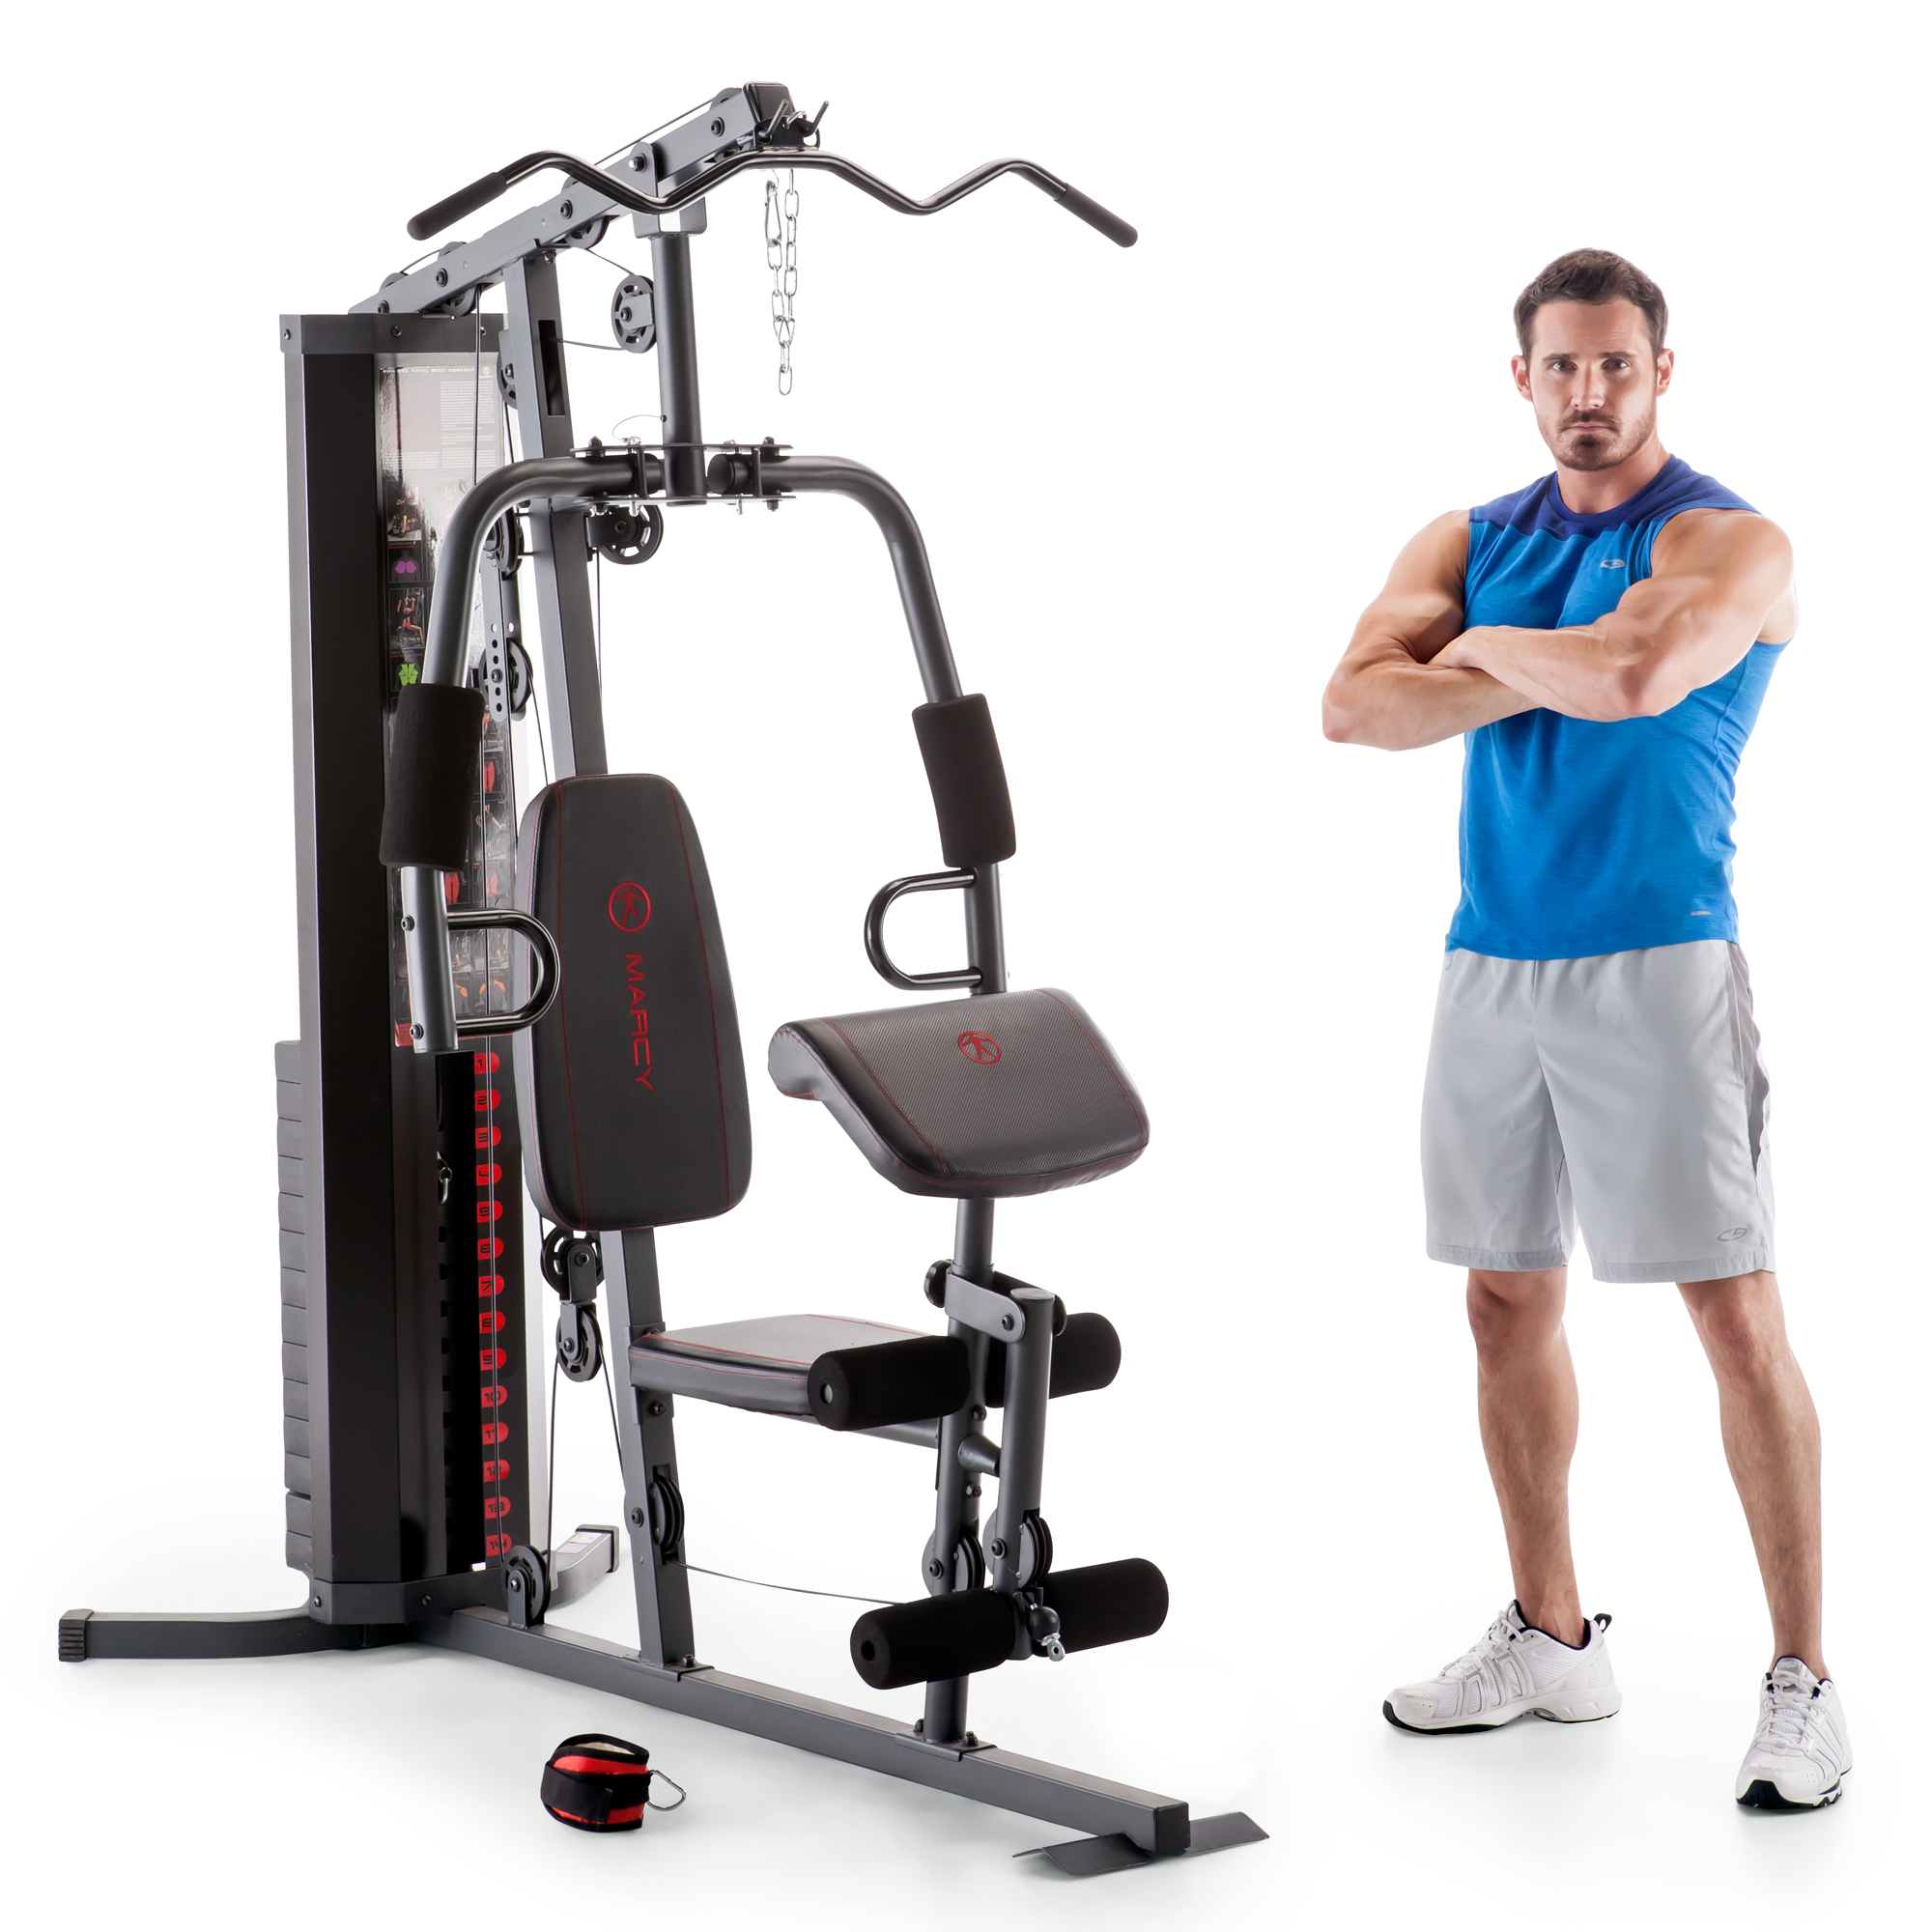 Marcy dual functioning upper and lower body pound stack home